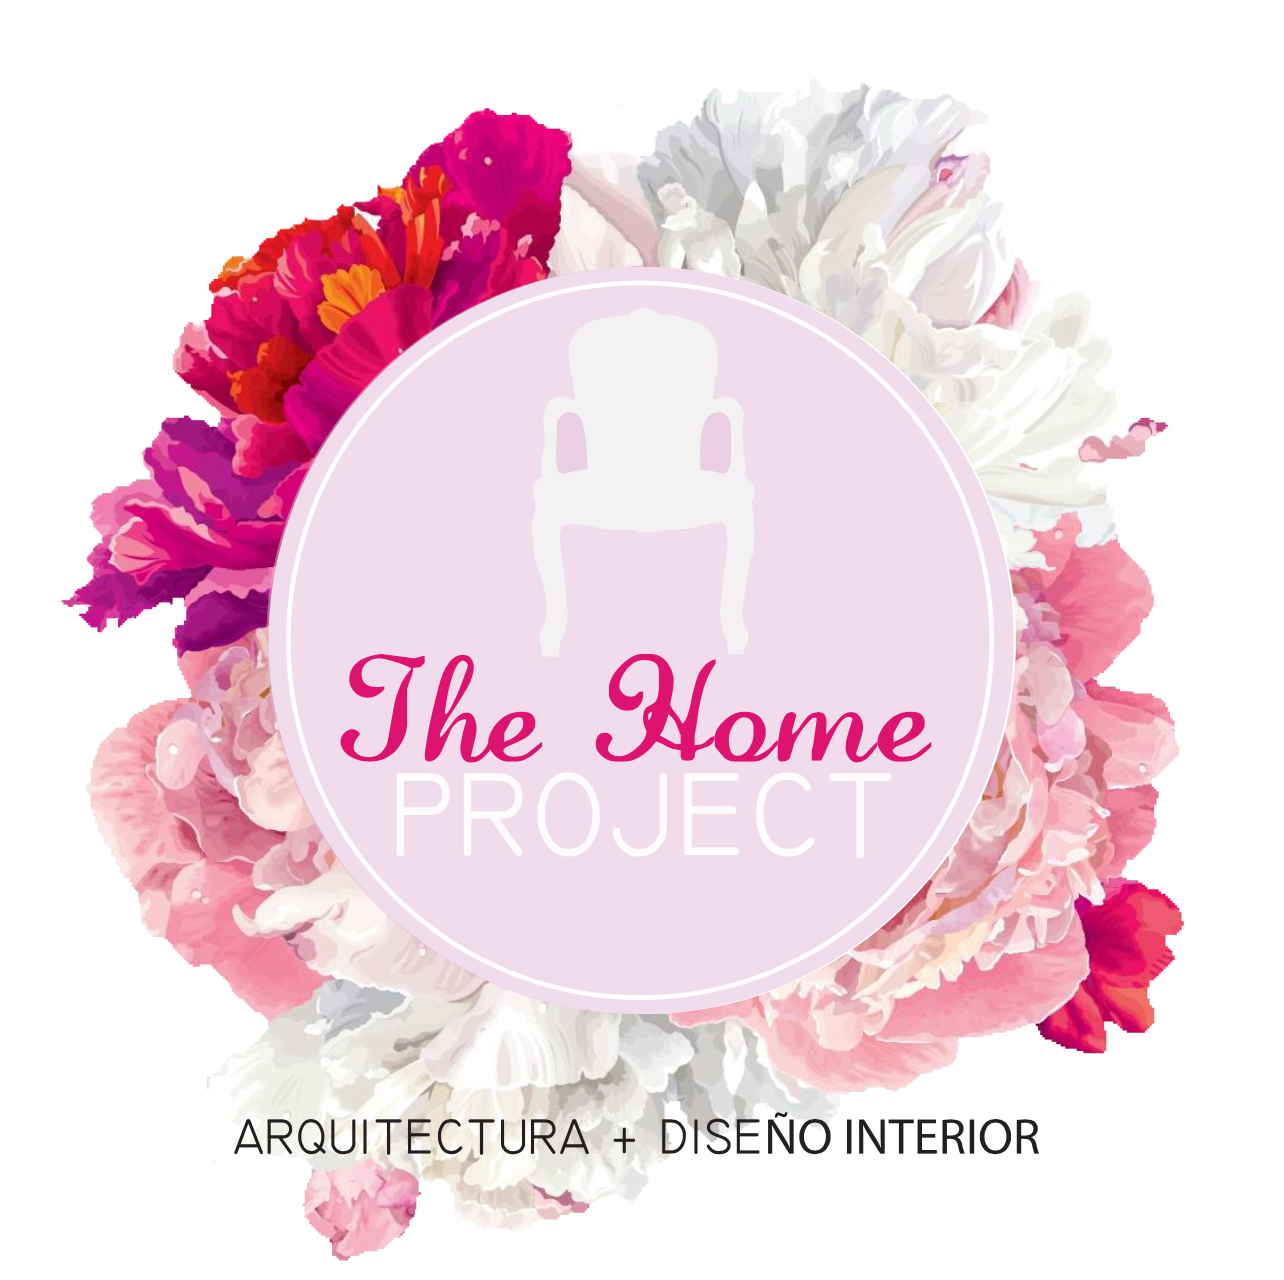 The Home Project